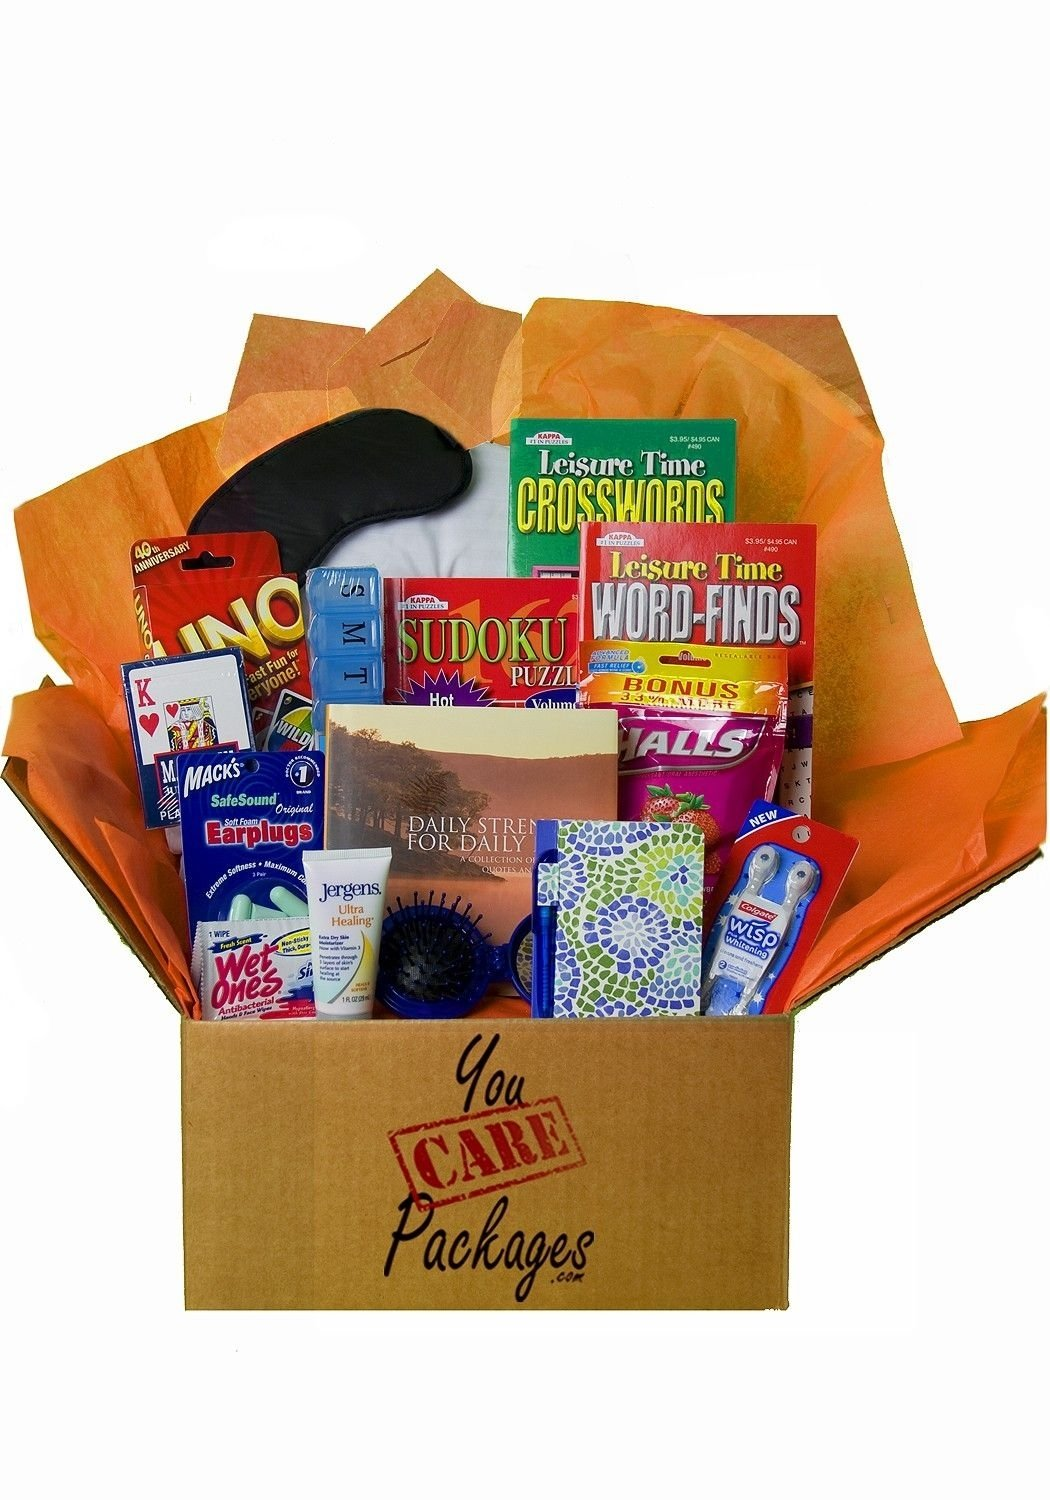 10 Cute Get Well Care Package Ideas get well hospital care package you care packages gift ideas 1 2021